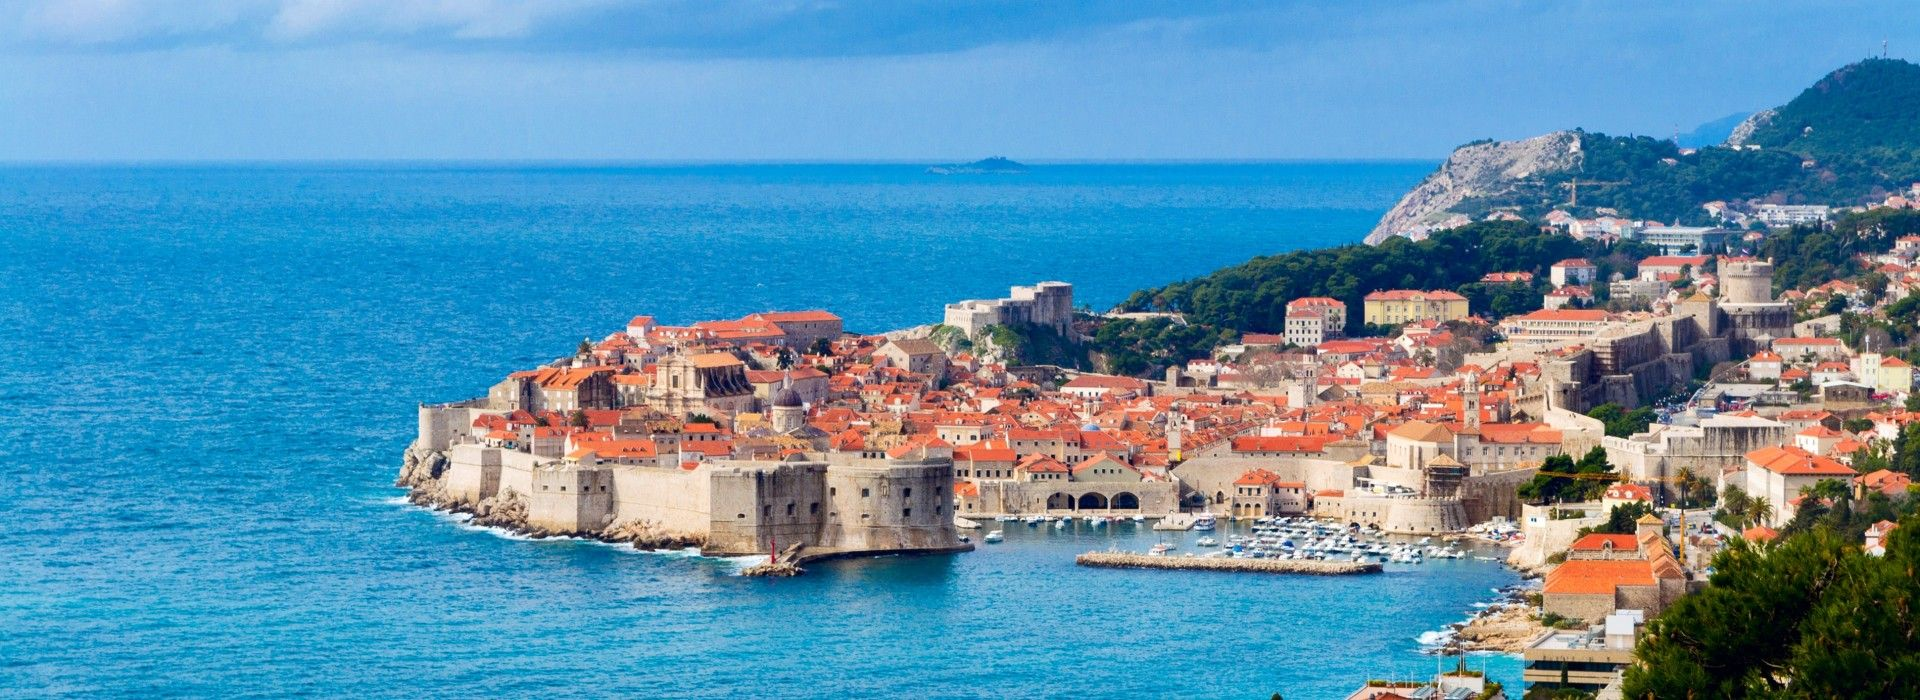 Sightseeing, attractions, culture and history Tours in Dubrovnik